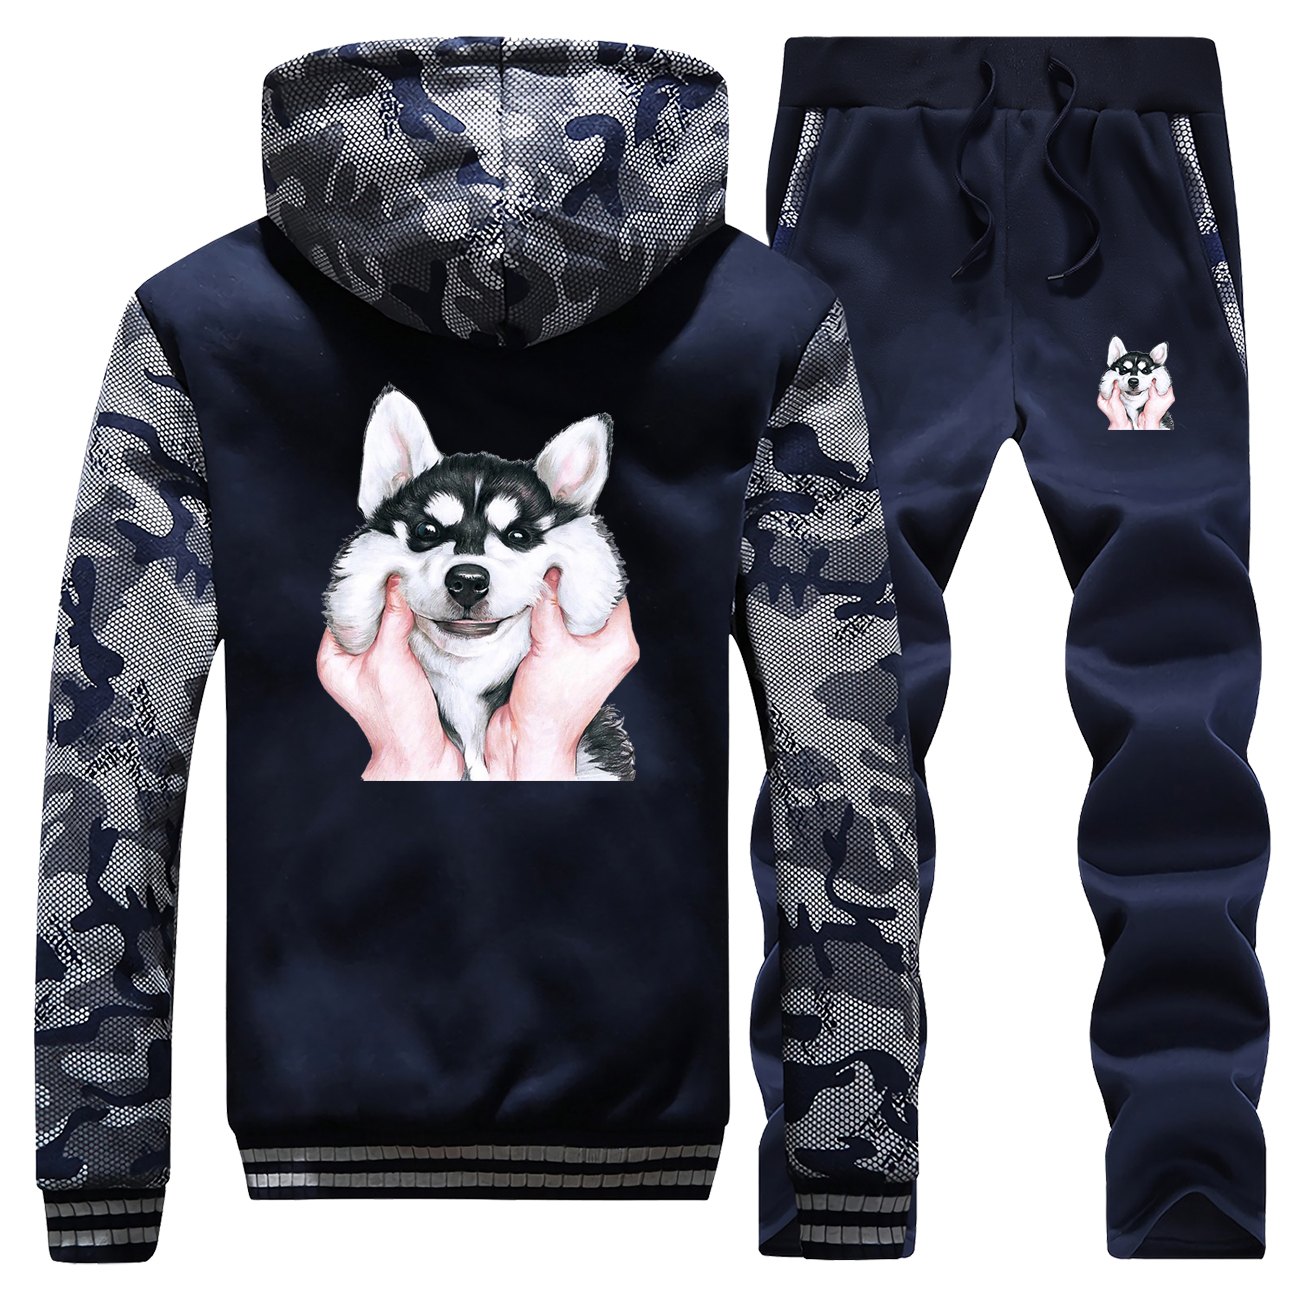 Winter Lovely Dog Jacket+pants Men Suits Fleece Hooded Sweatshirts Pants Warm Tracksuits Sport Sets Camouflage Thick 2Pcs Set